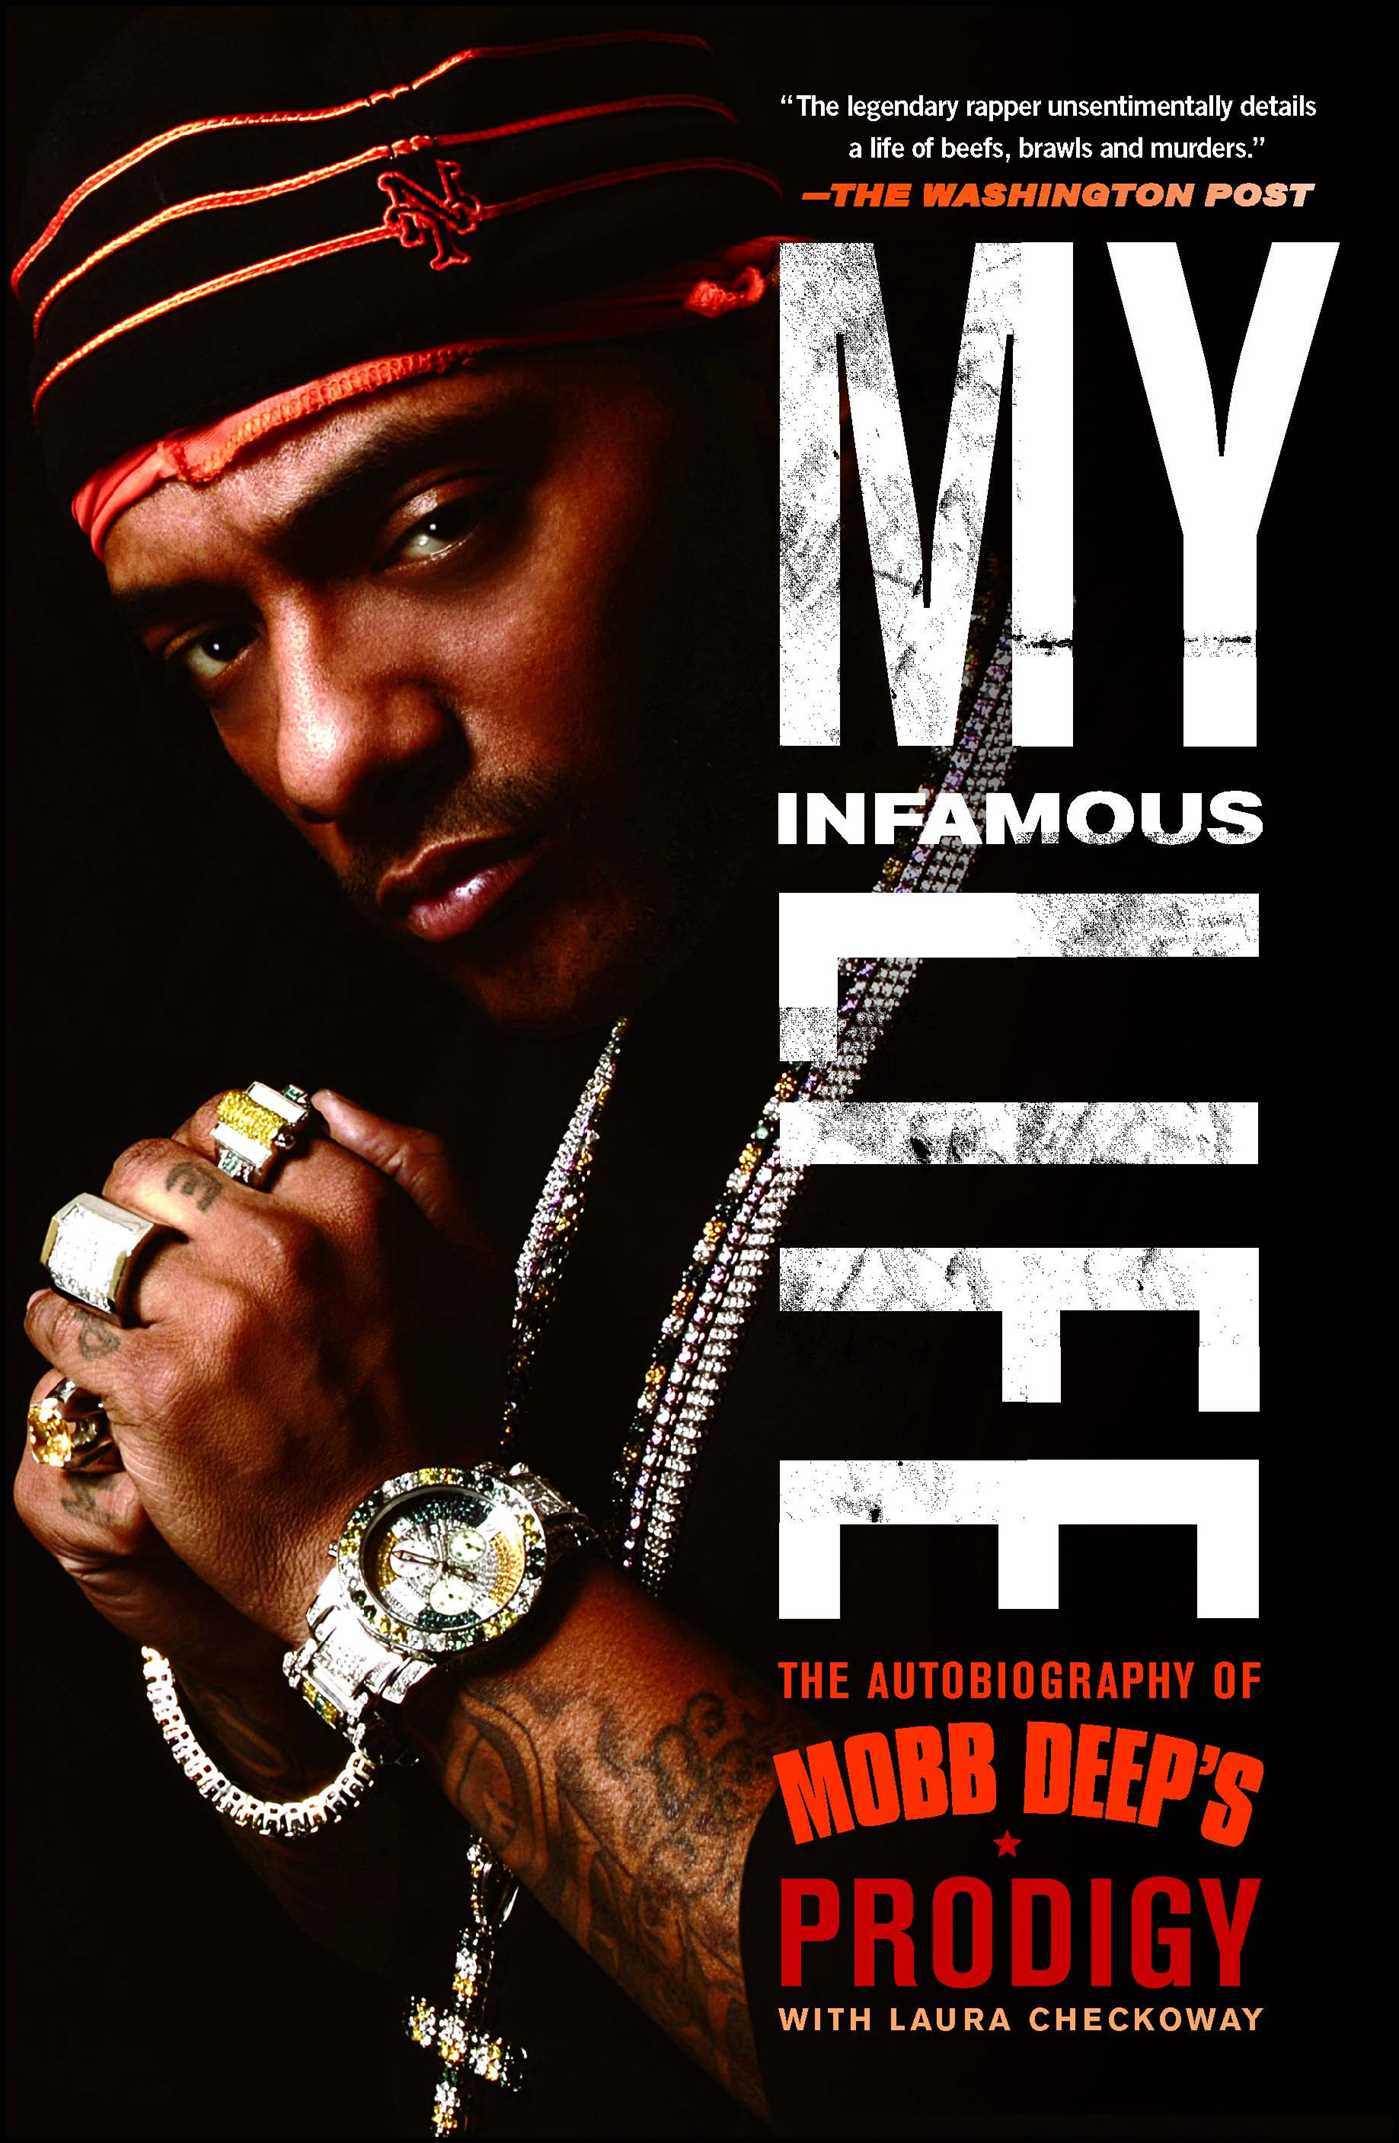 The Autobiography Of Mobb Deep's Prodigy